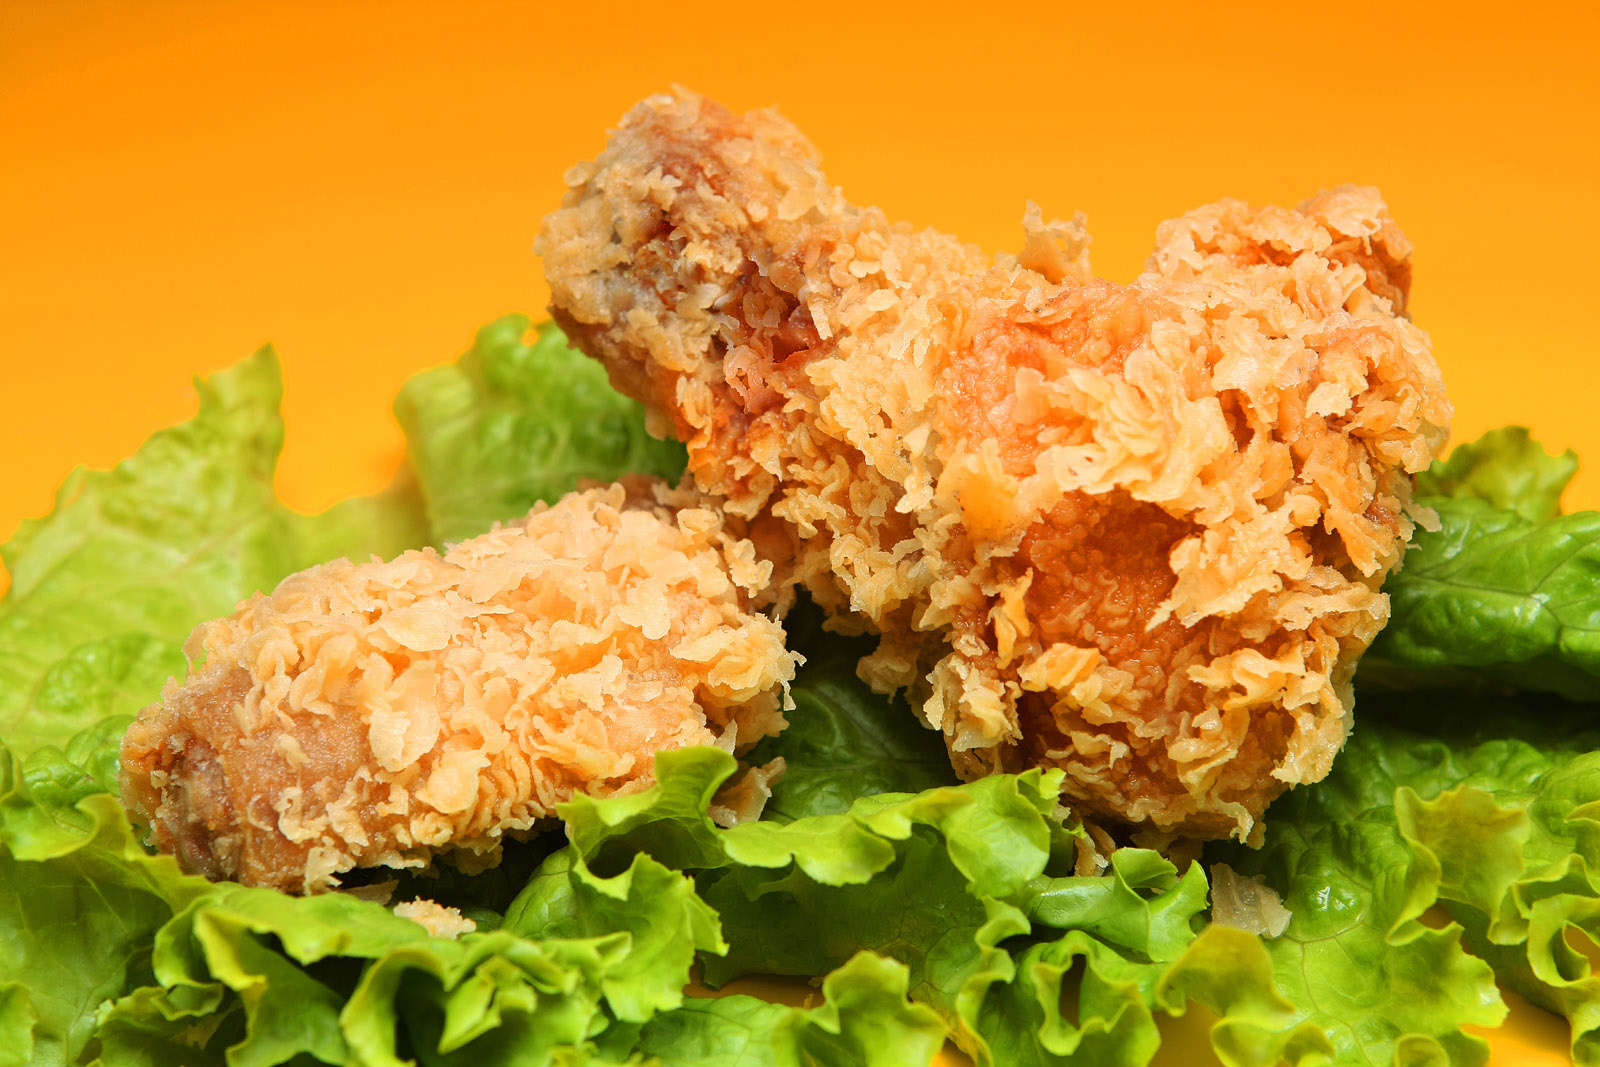 HD hamburgers and fried chicken picture 13935